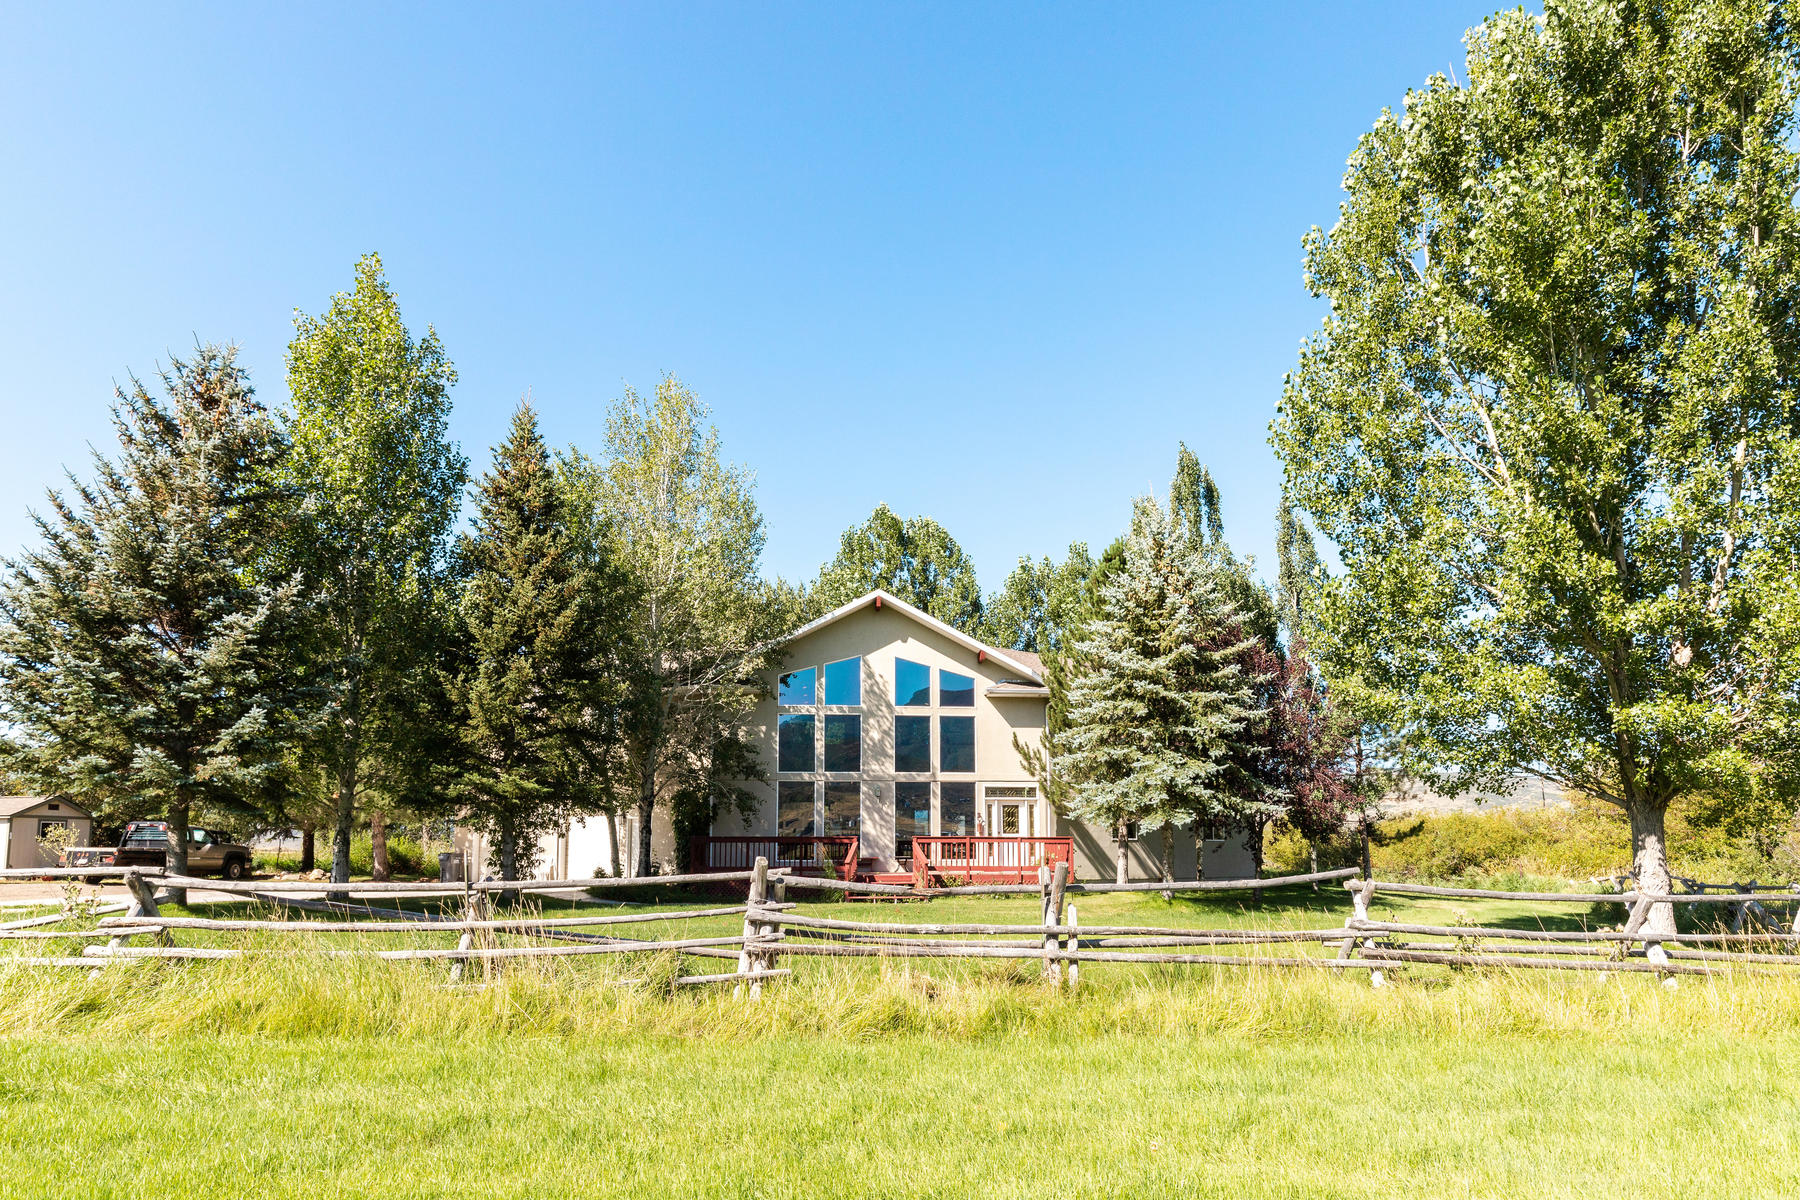 Farm / Ranch / Plantation for Active at Wonderful 4 Bed 3 Bath 18.4 Acre Estate on Stream in Kamas Valley 1075 N State Rd 32 Kamas, Utah 84036 United States